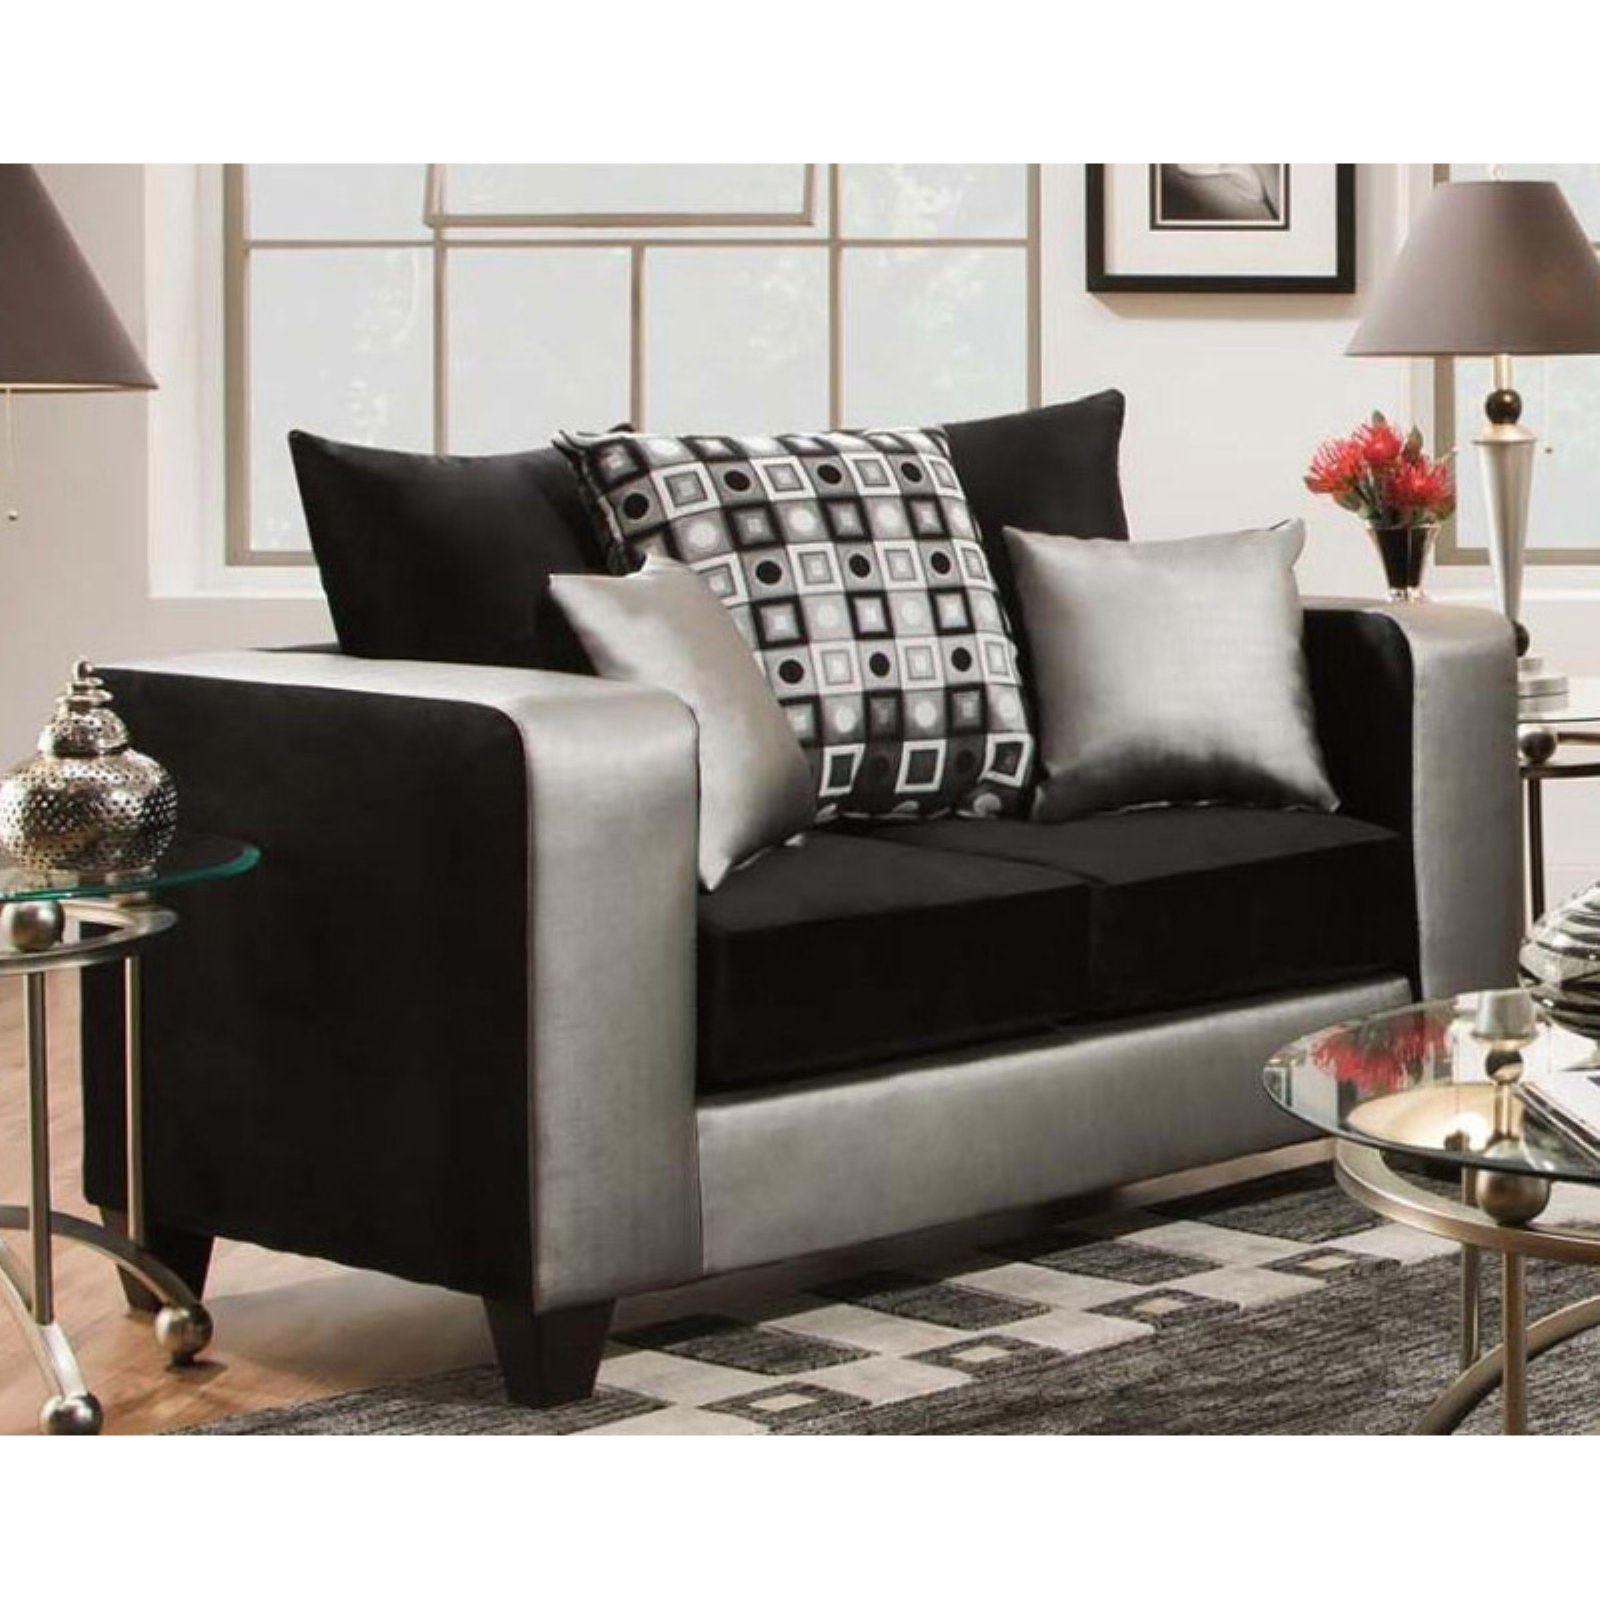 Chelsea Home Furniture Micha Two-Toned Loveseat